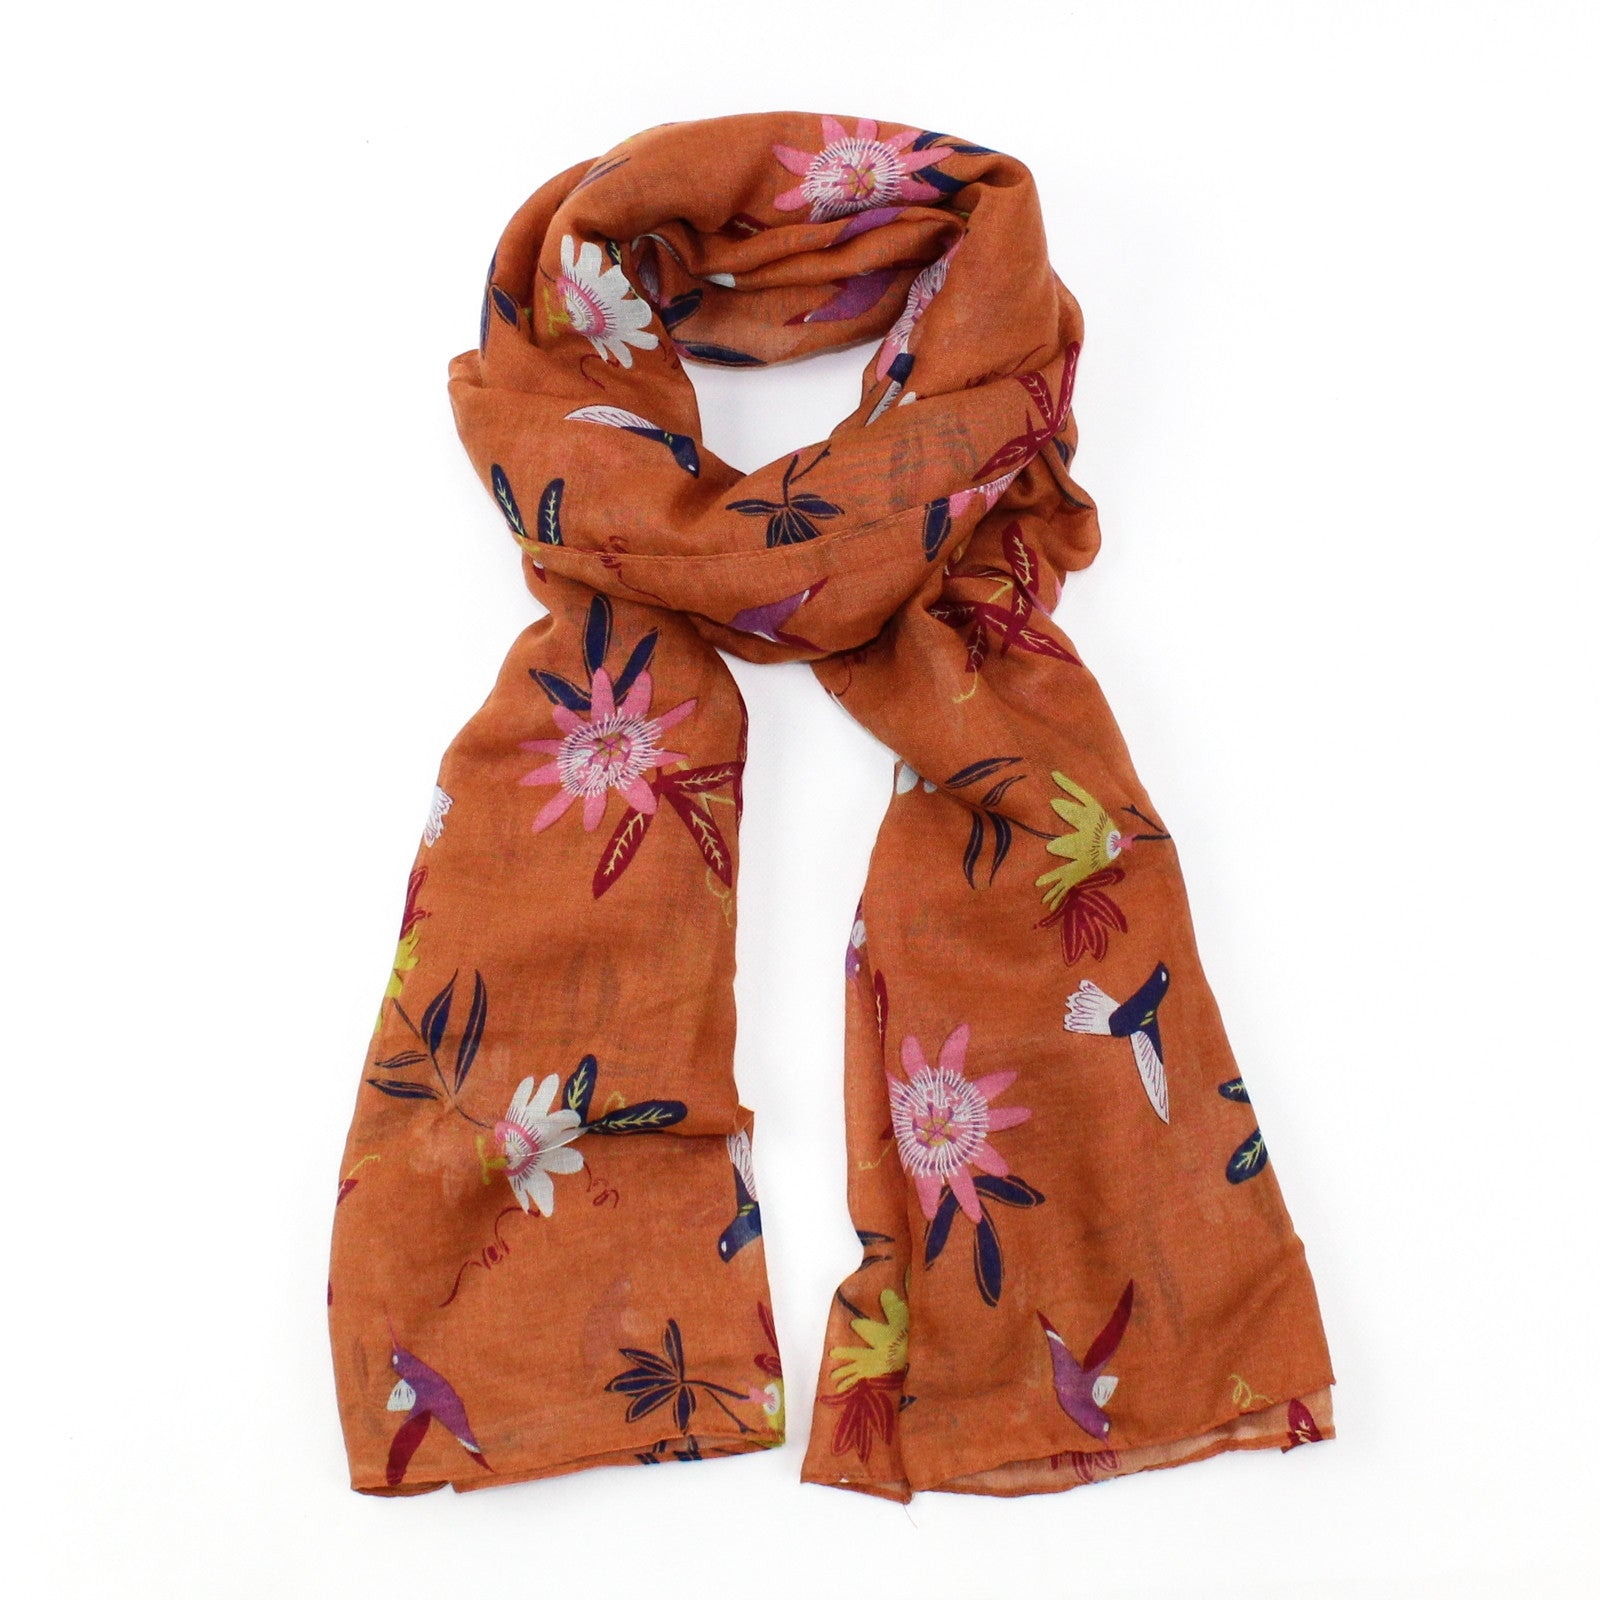 Flower & Hummingbird Scarf - Dark Orange